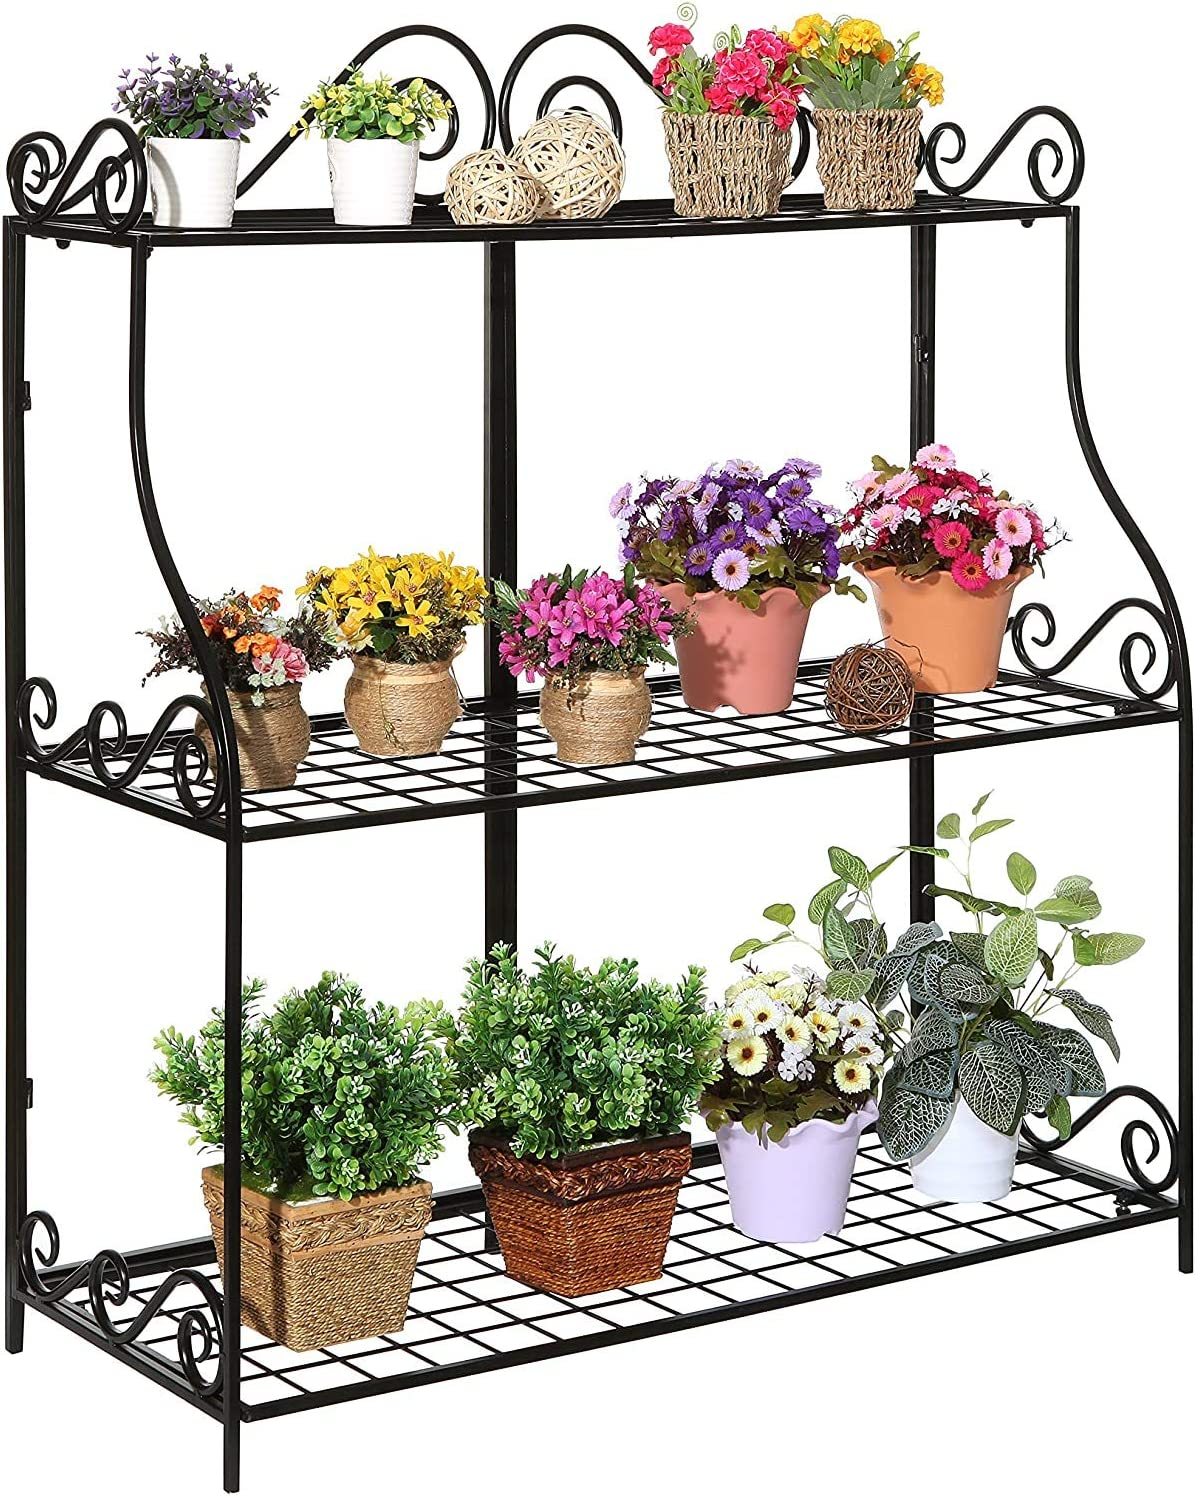 Freestanding 1 year warranty Metal Scrollwork Design 3 St Plant Stand Tier Max 47% OFF Home